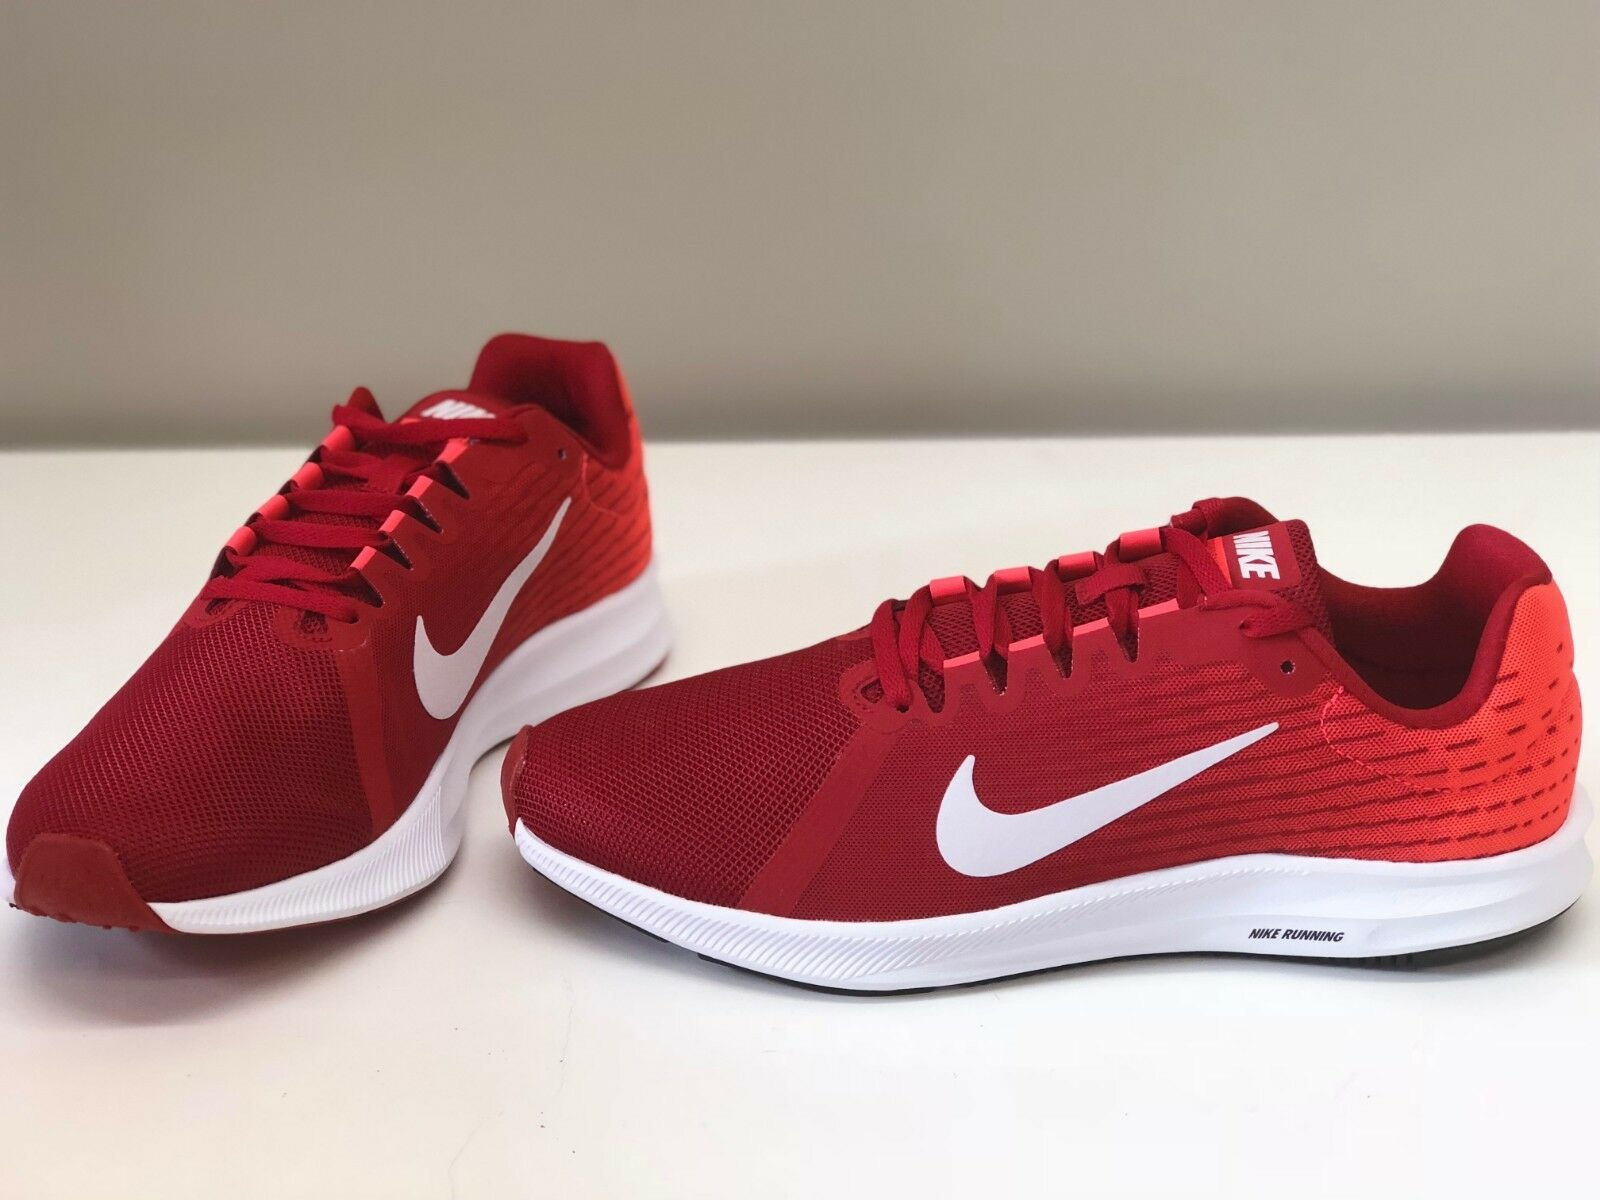 aa97599a452986 NIB MENS SIZE 9 NIKE DOWNSHIFTER DOWNSHIFTER DOWNSHIFTER 8 RUNNING SNEAKERS  RED 852459-009 426948